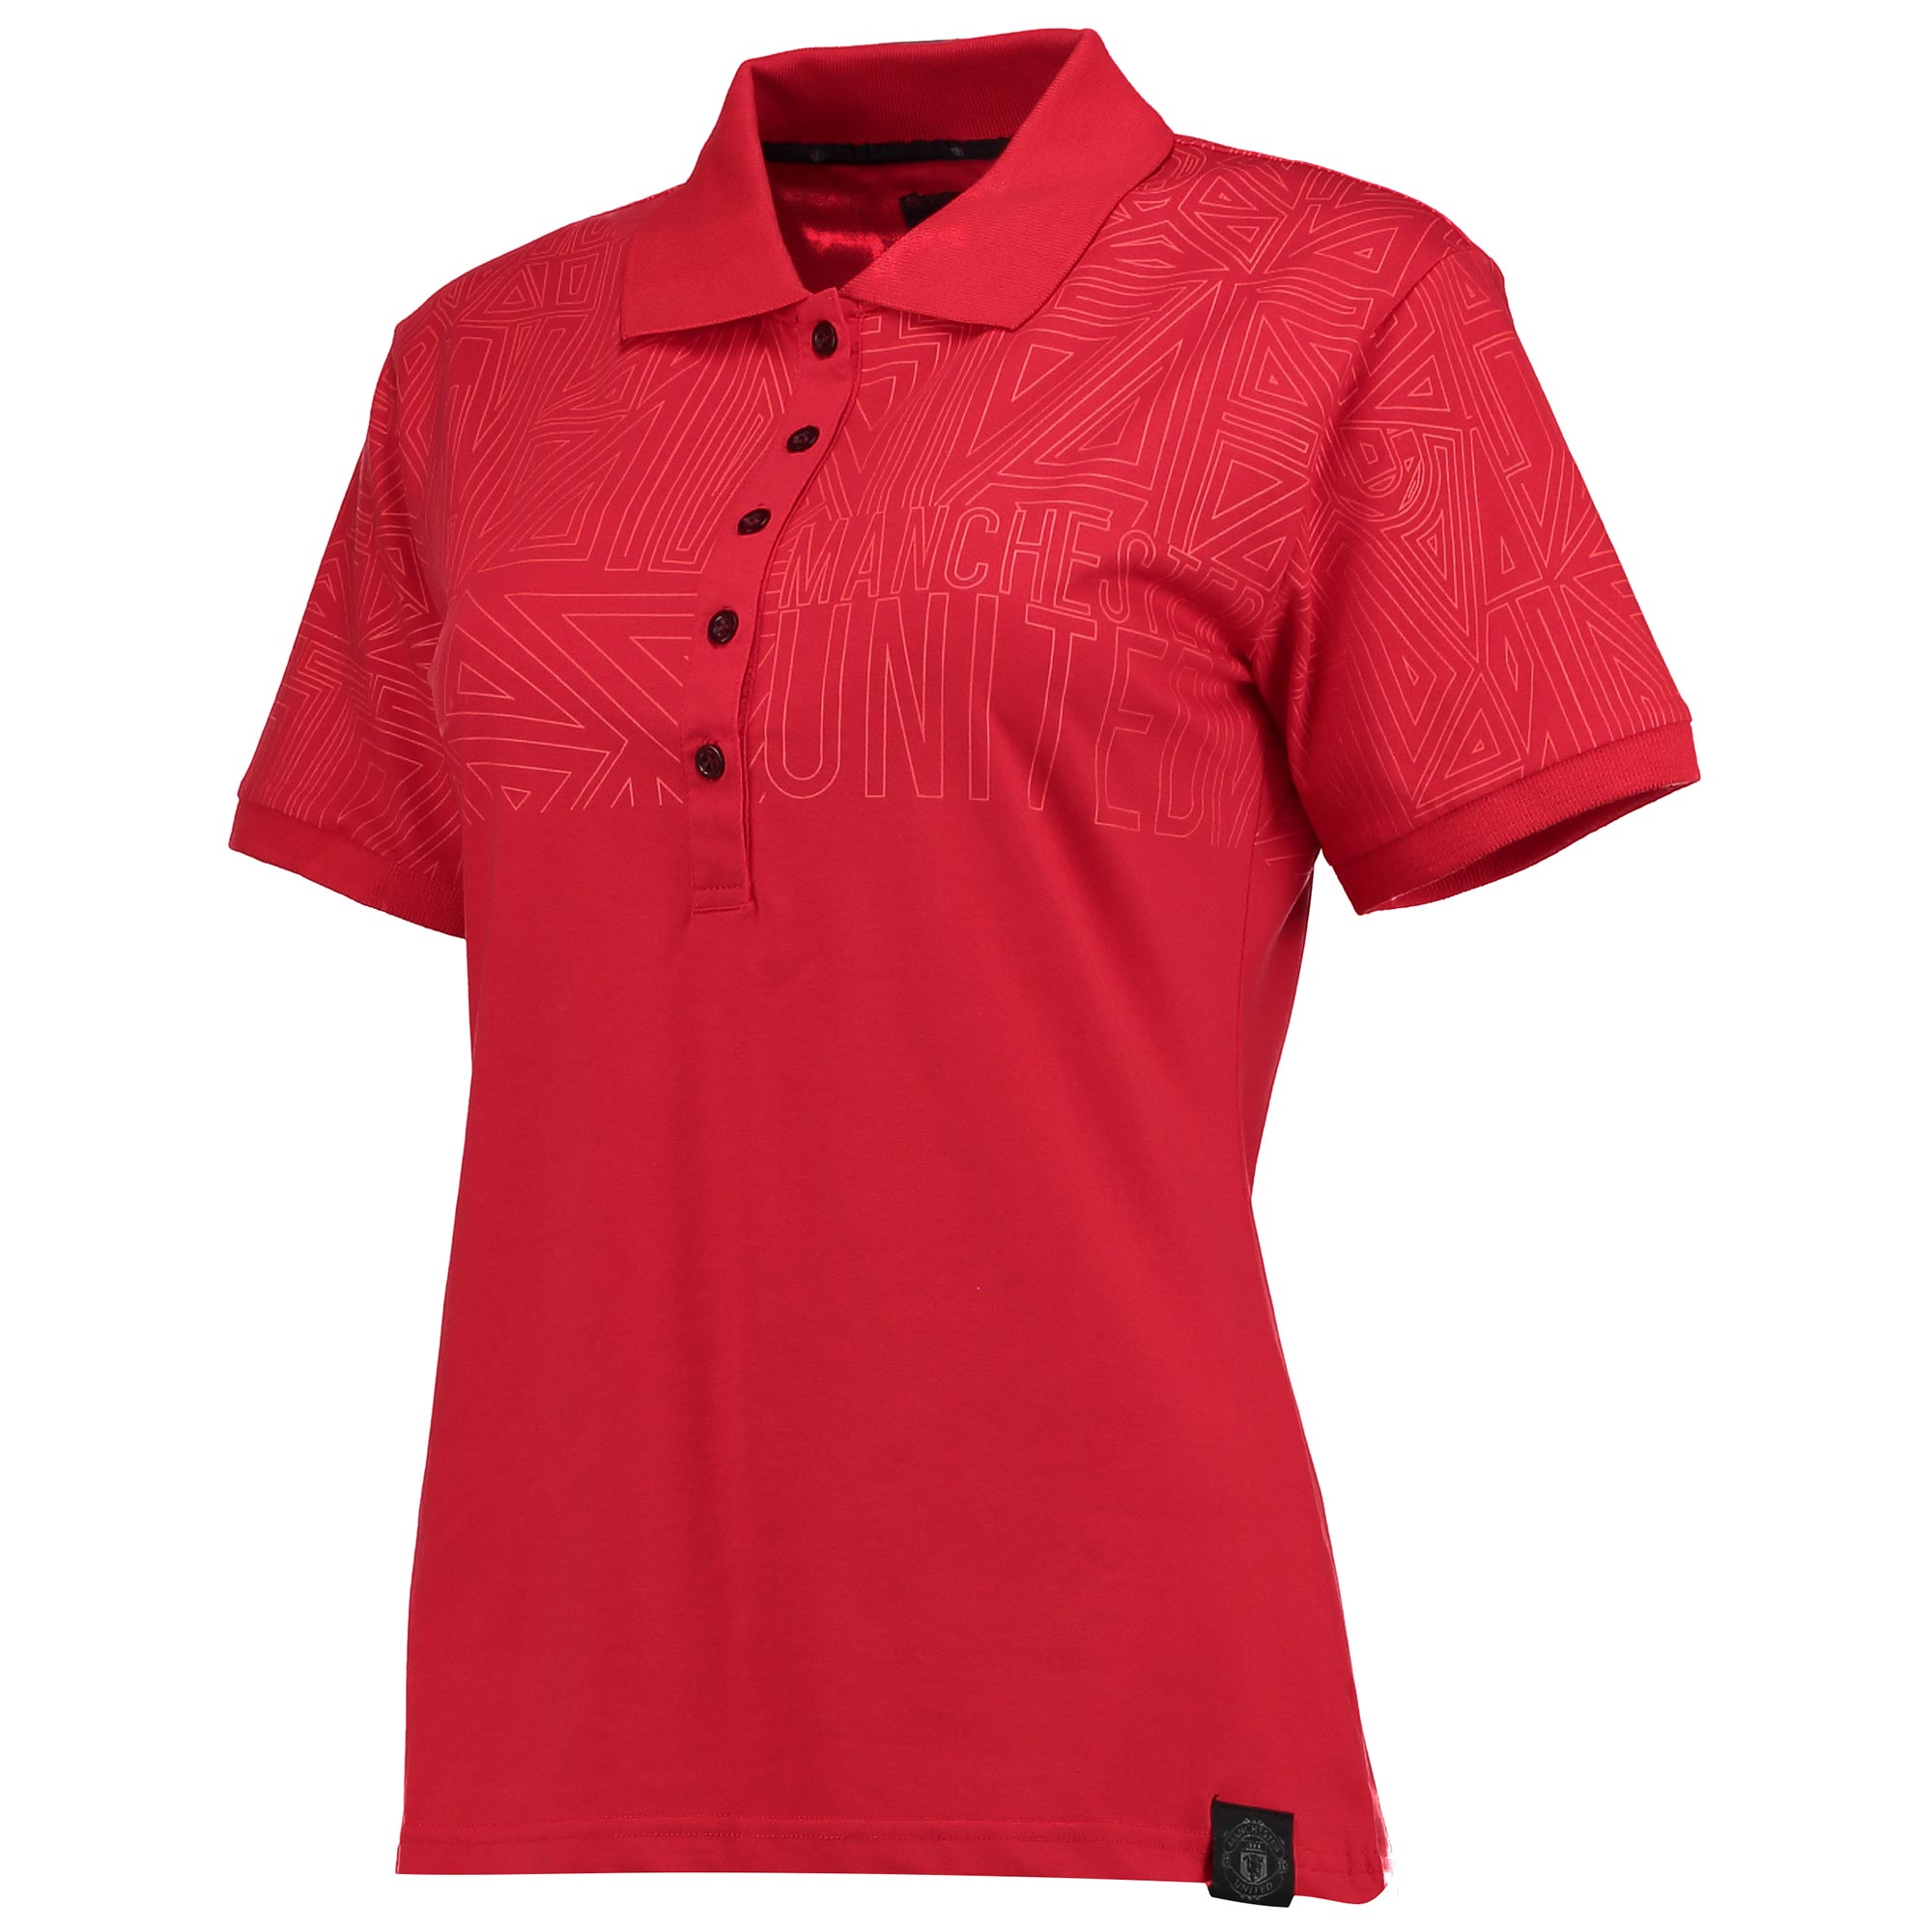 Manchester United Sportswear Polo Shirt - Coral - Womens